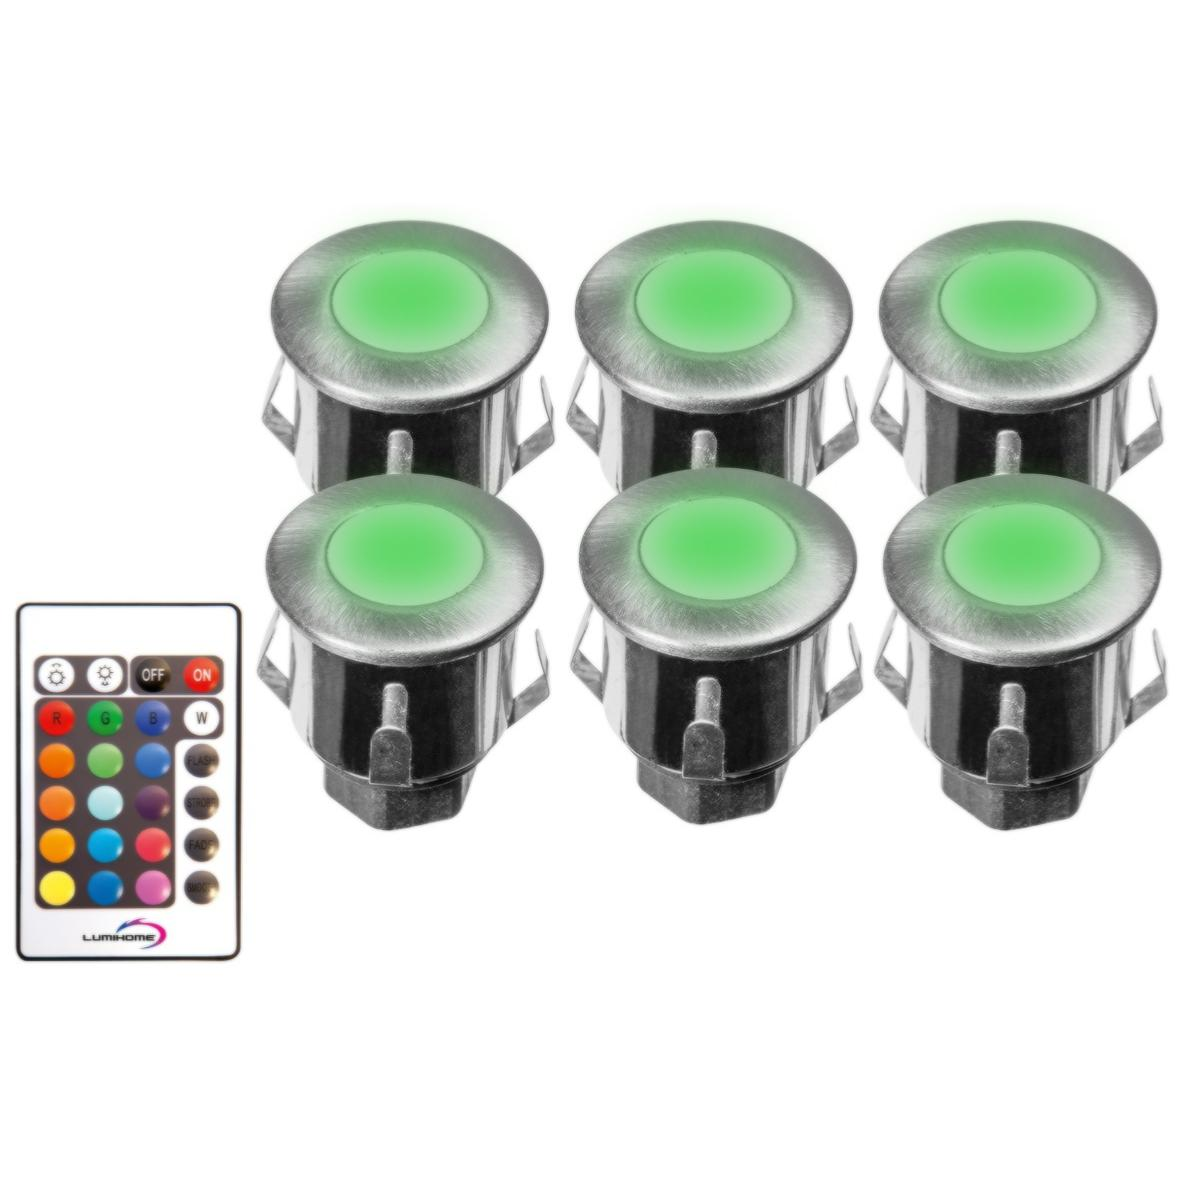 Spot terrasse piscine rgb 12v led ip67 kit de 6 spot led rgb for Spot exterieur led encastrable